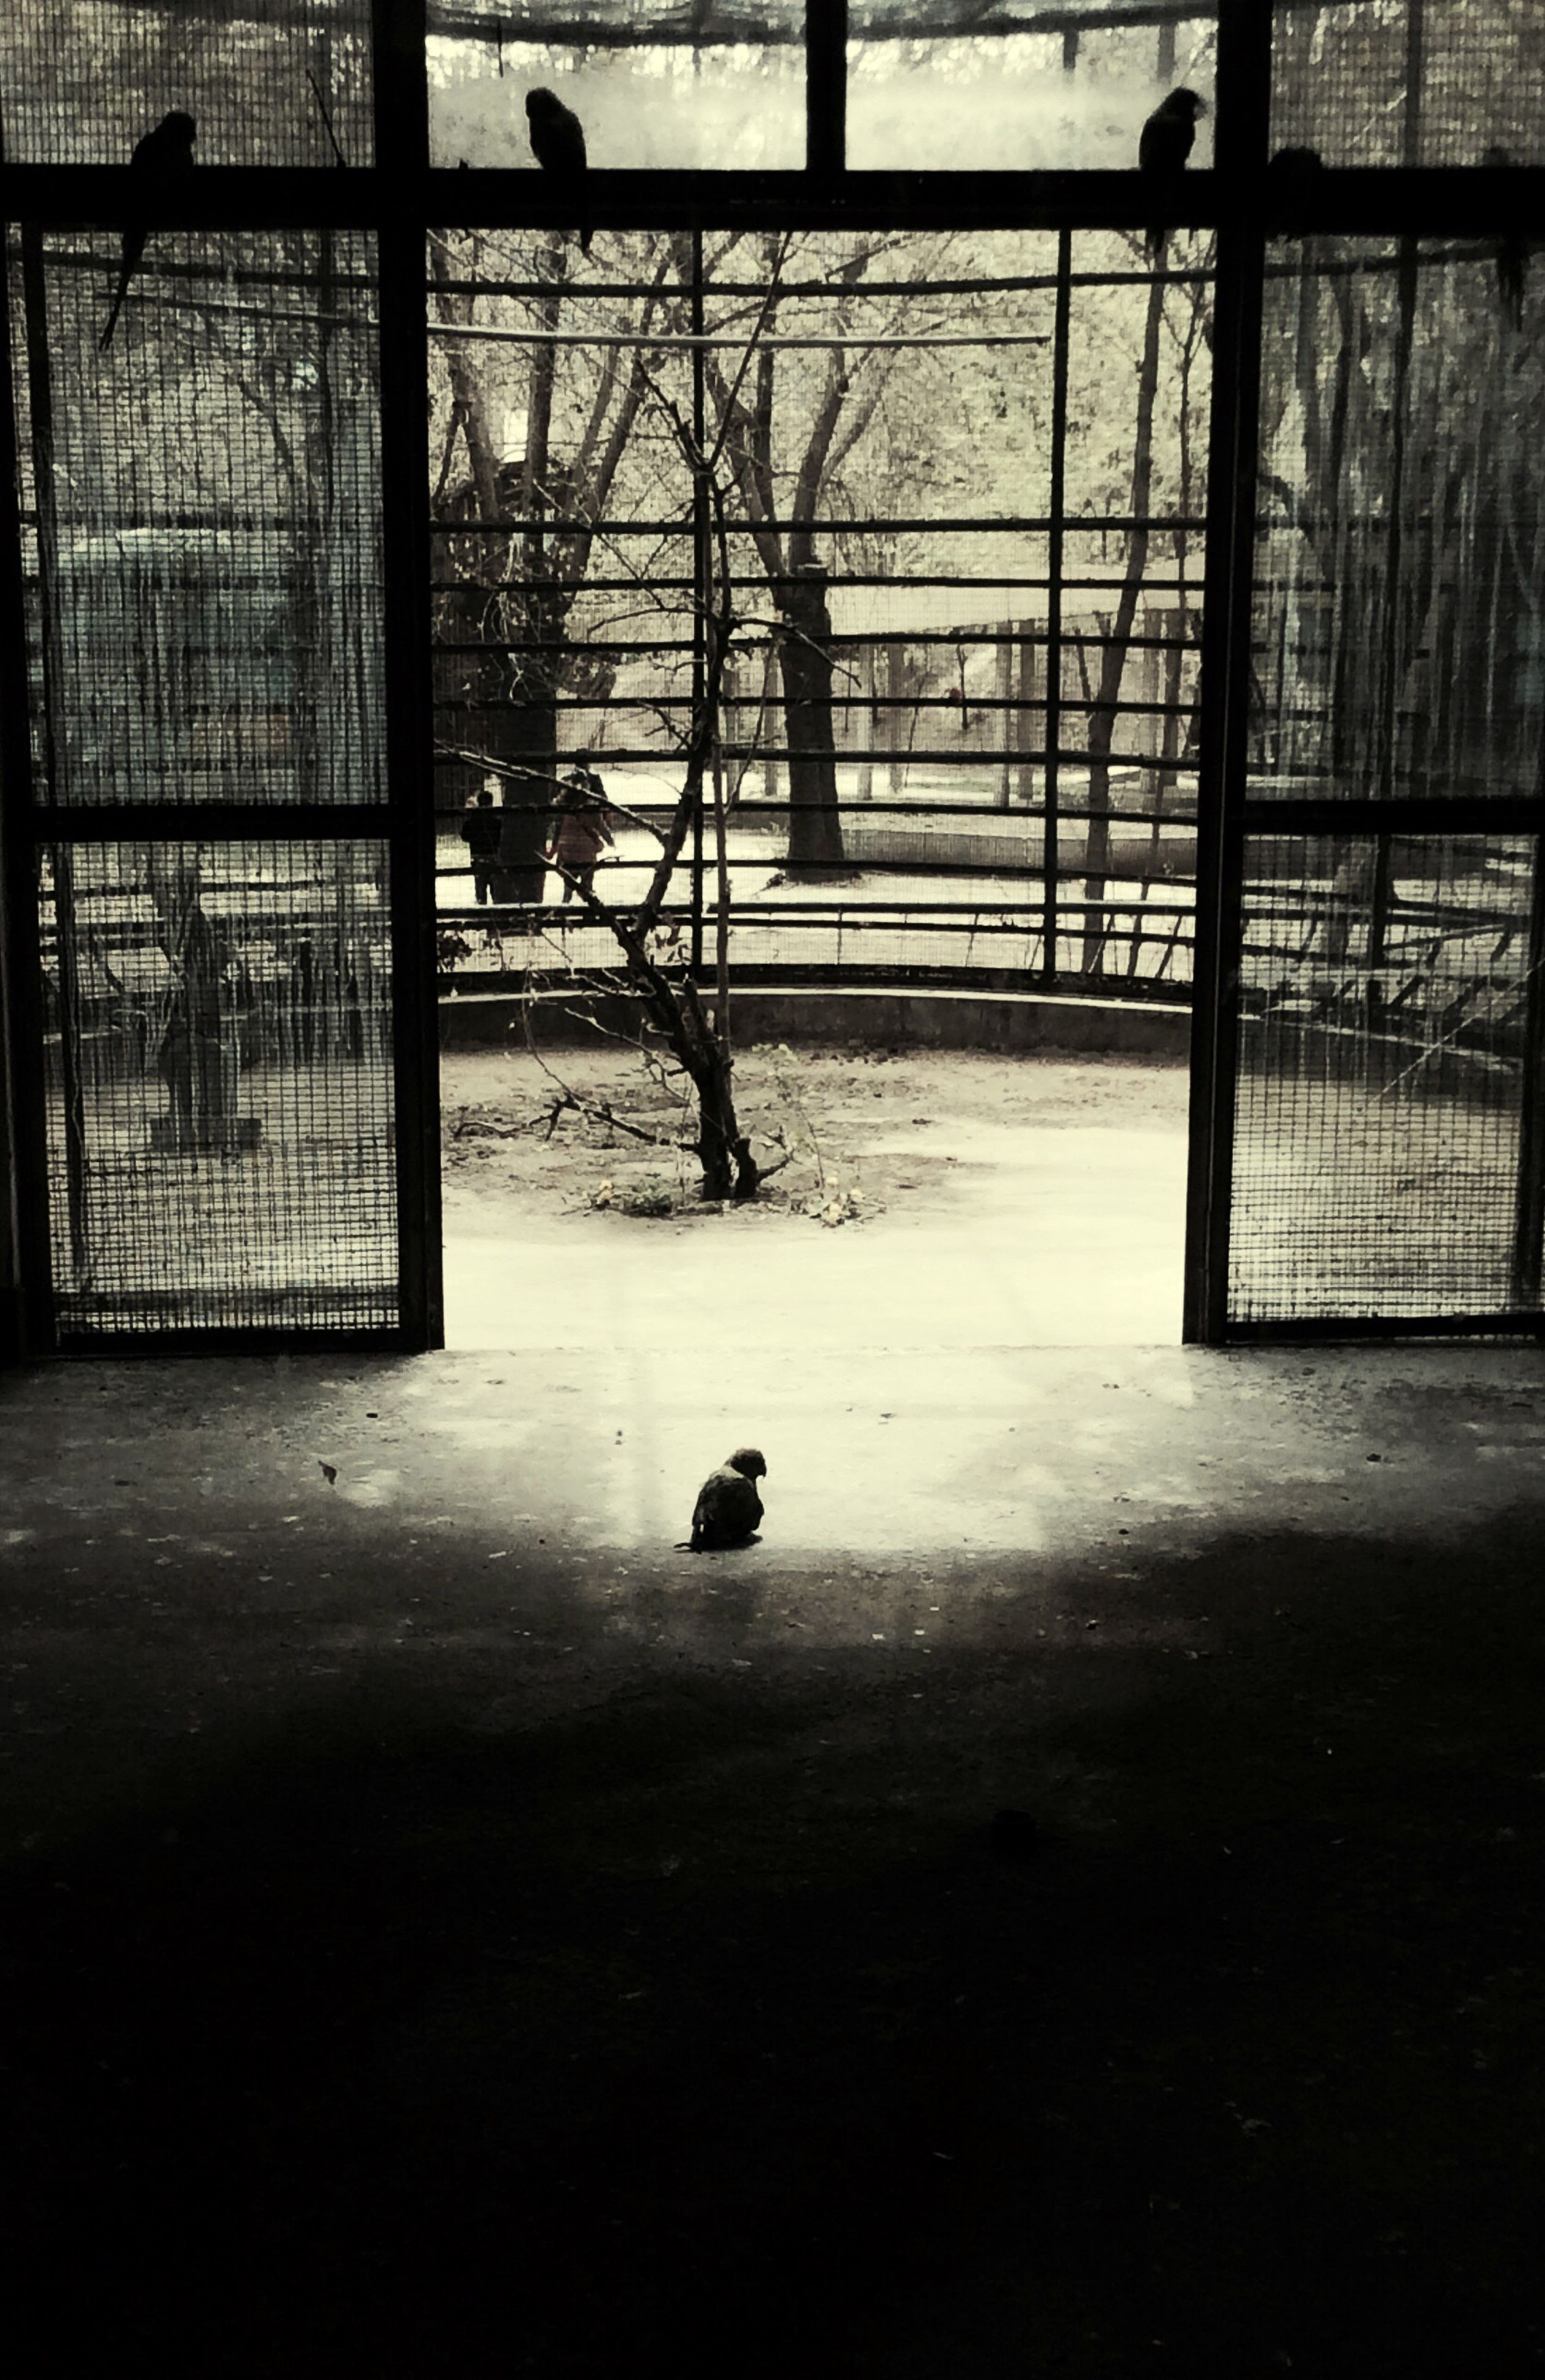 architecture, built structure, building exterior, window, building, glass - material, animal themes, indoors, house, metal, metal grate, day, no people, bird, city, protection, fence, wall - building feature, abandoned